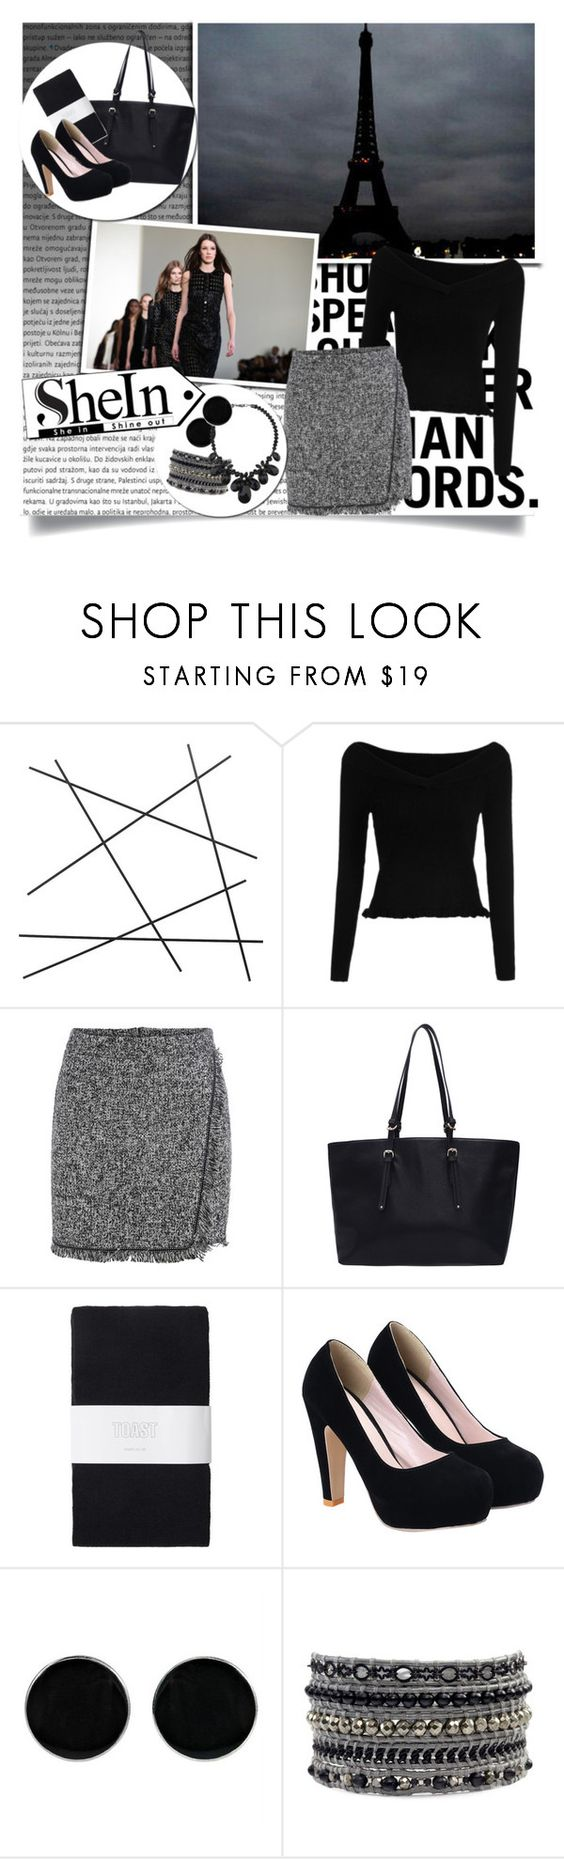 """SheIn: Grey Fringe Skirt"" by rosey-wolf-x ❤ liked on Polyvore featuring CB2, Oris, Chanel, Mercedes-Benz, Toast, AeraVida, Wallis, WorkWear, Sheinside and shein"